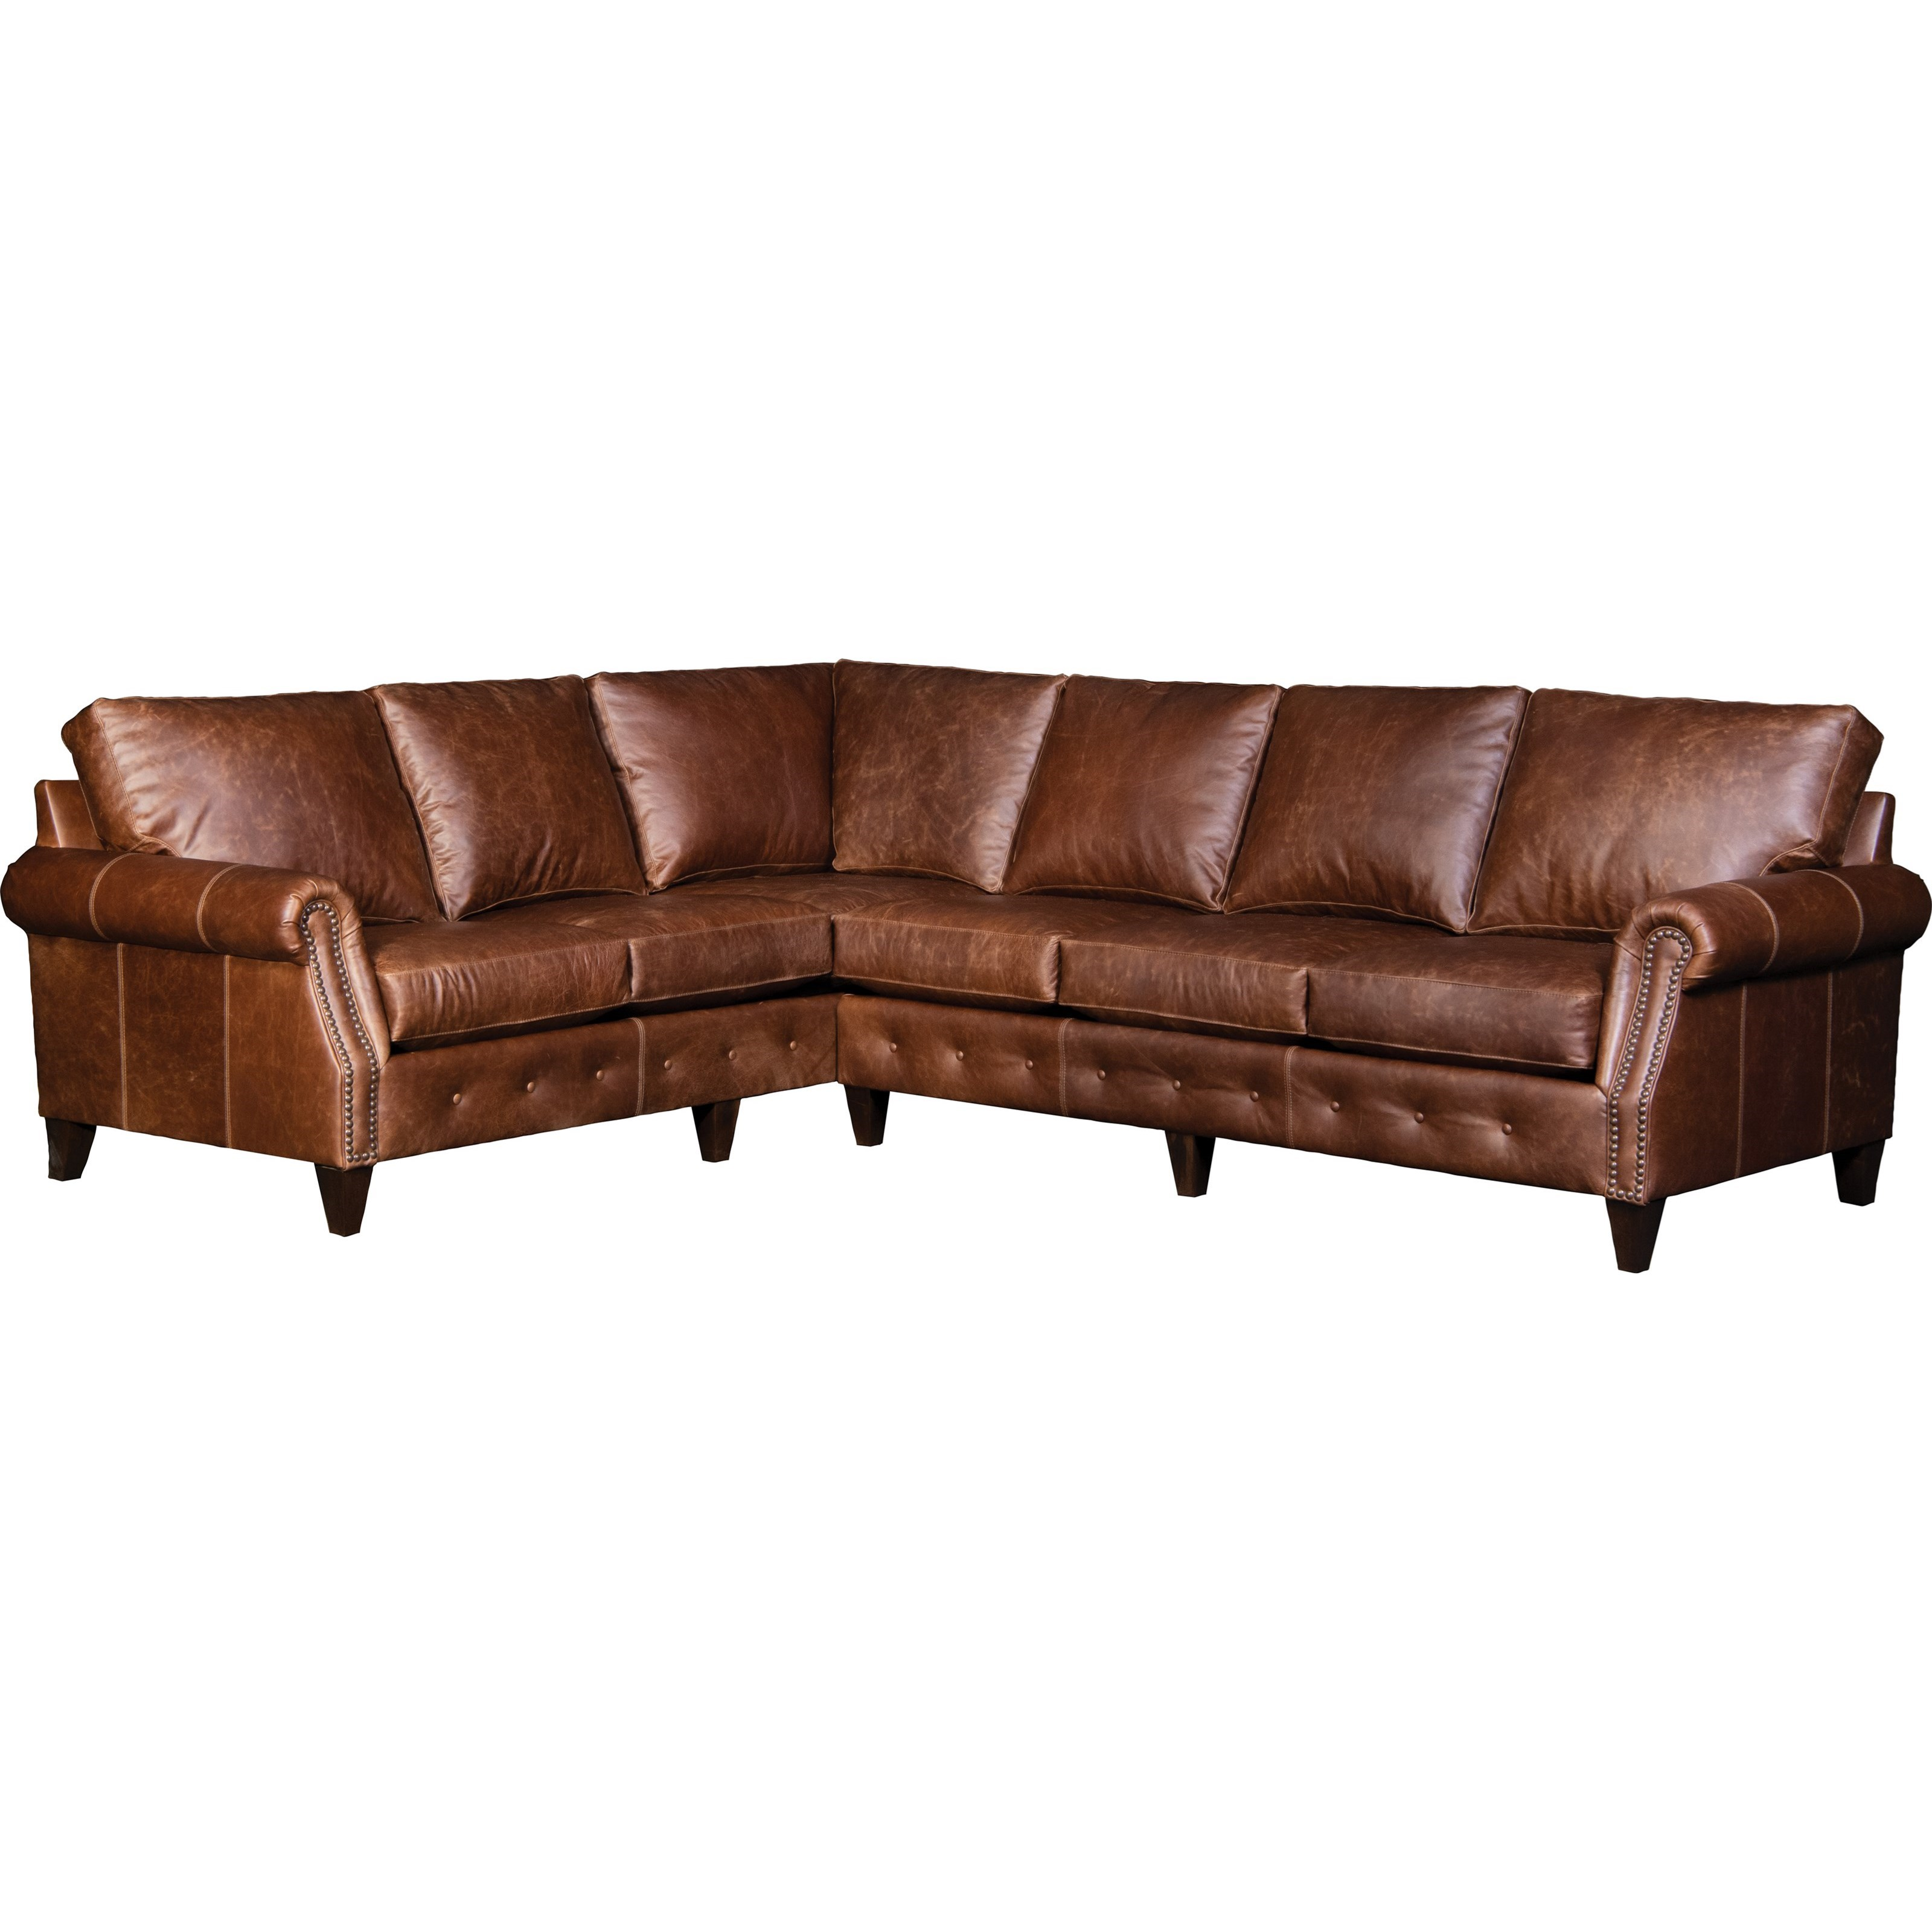 4040 5-Seat Sectional Sofa w/ RAF Sofa by Mayo at Wilson's Furniture